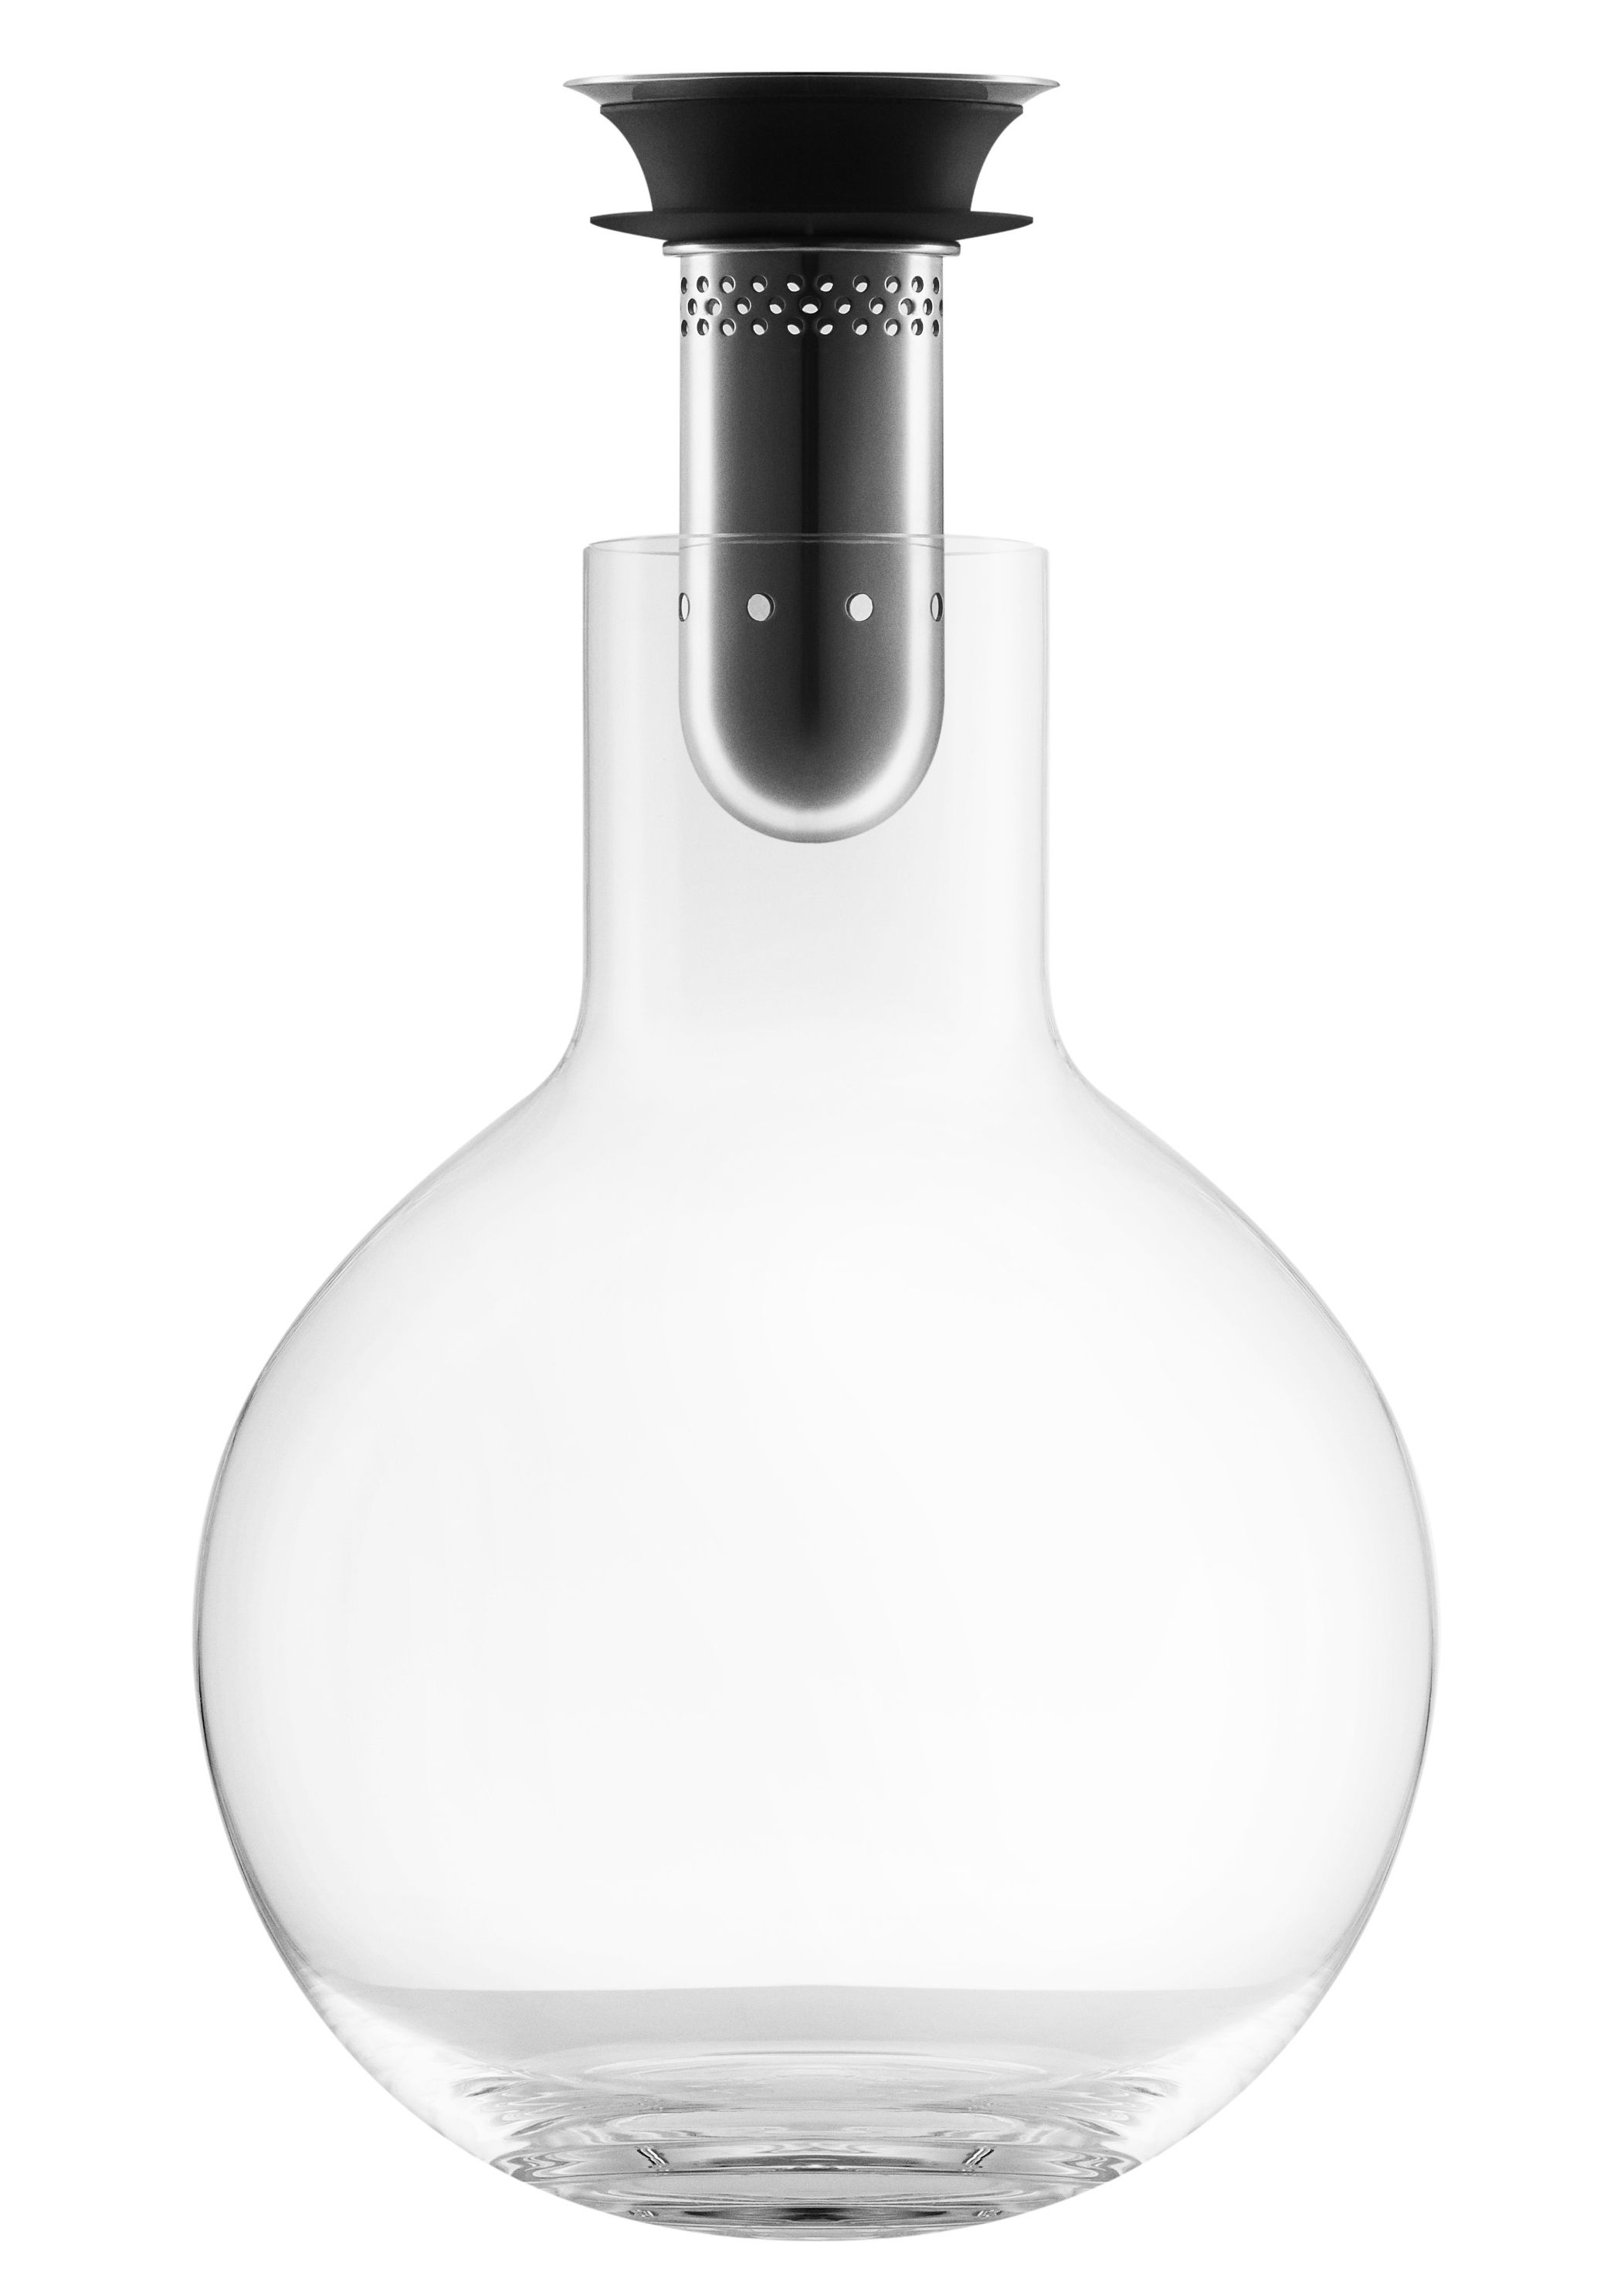 Tableware - Water Carafes & Wine Decanters - Decanter by Eva Solo - Transparent - Mouth blown glass, Silicone, Stainless steel